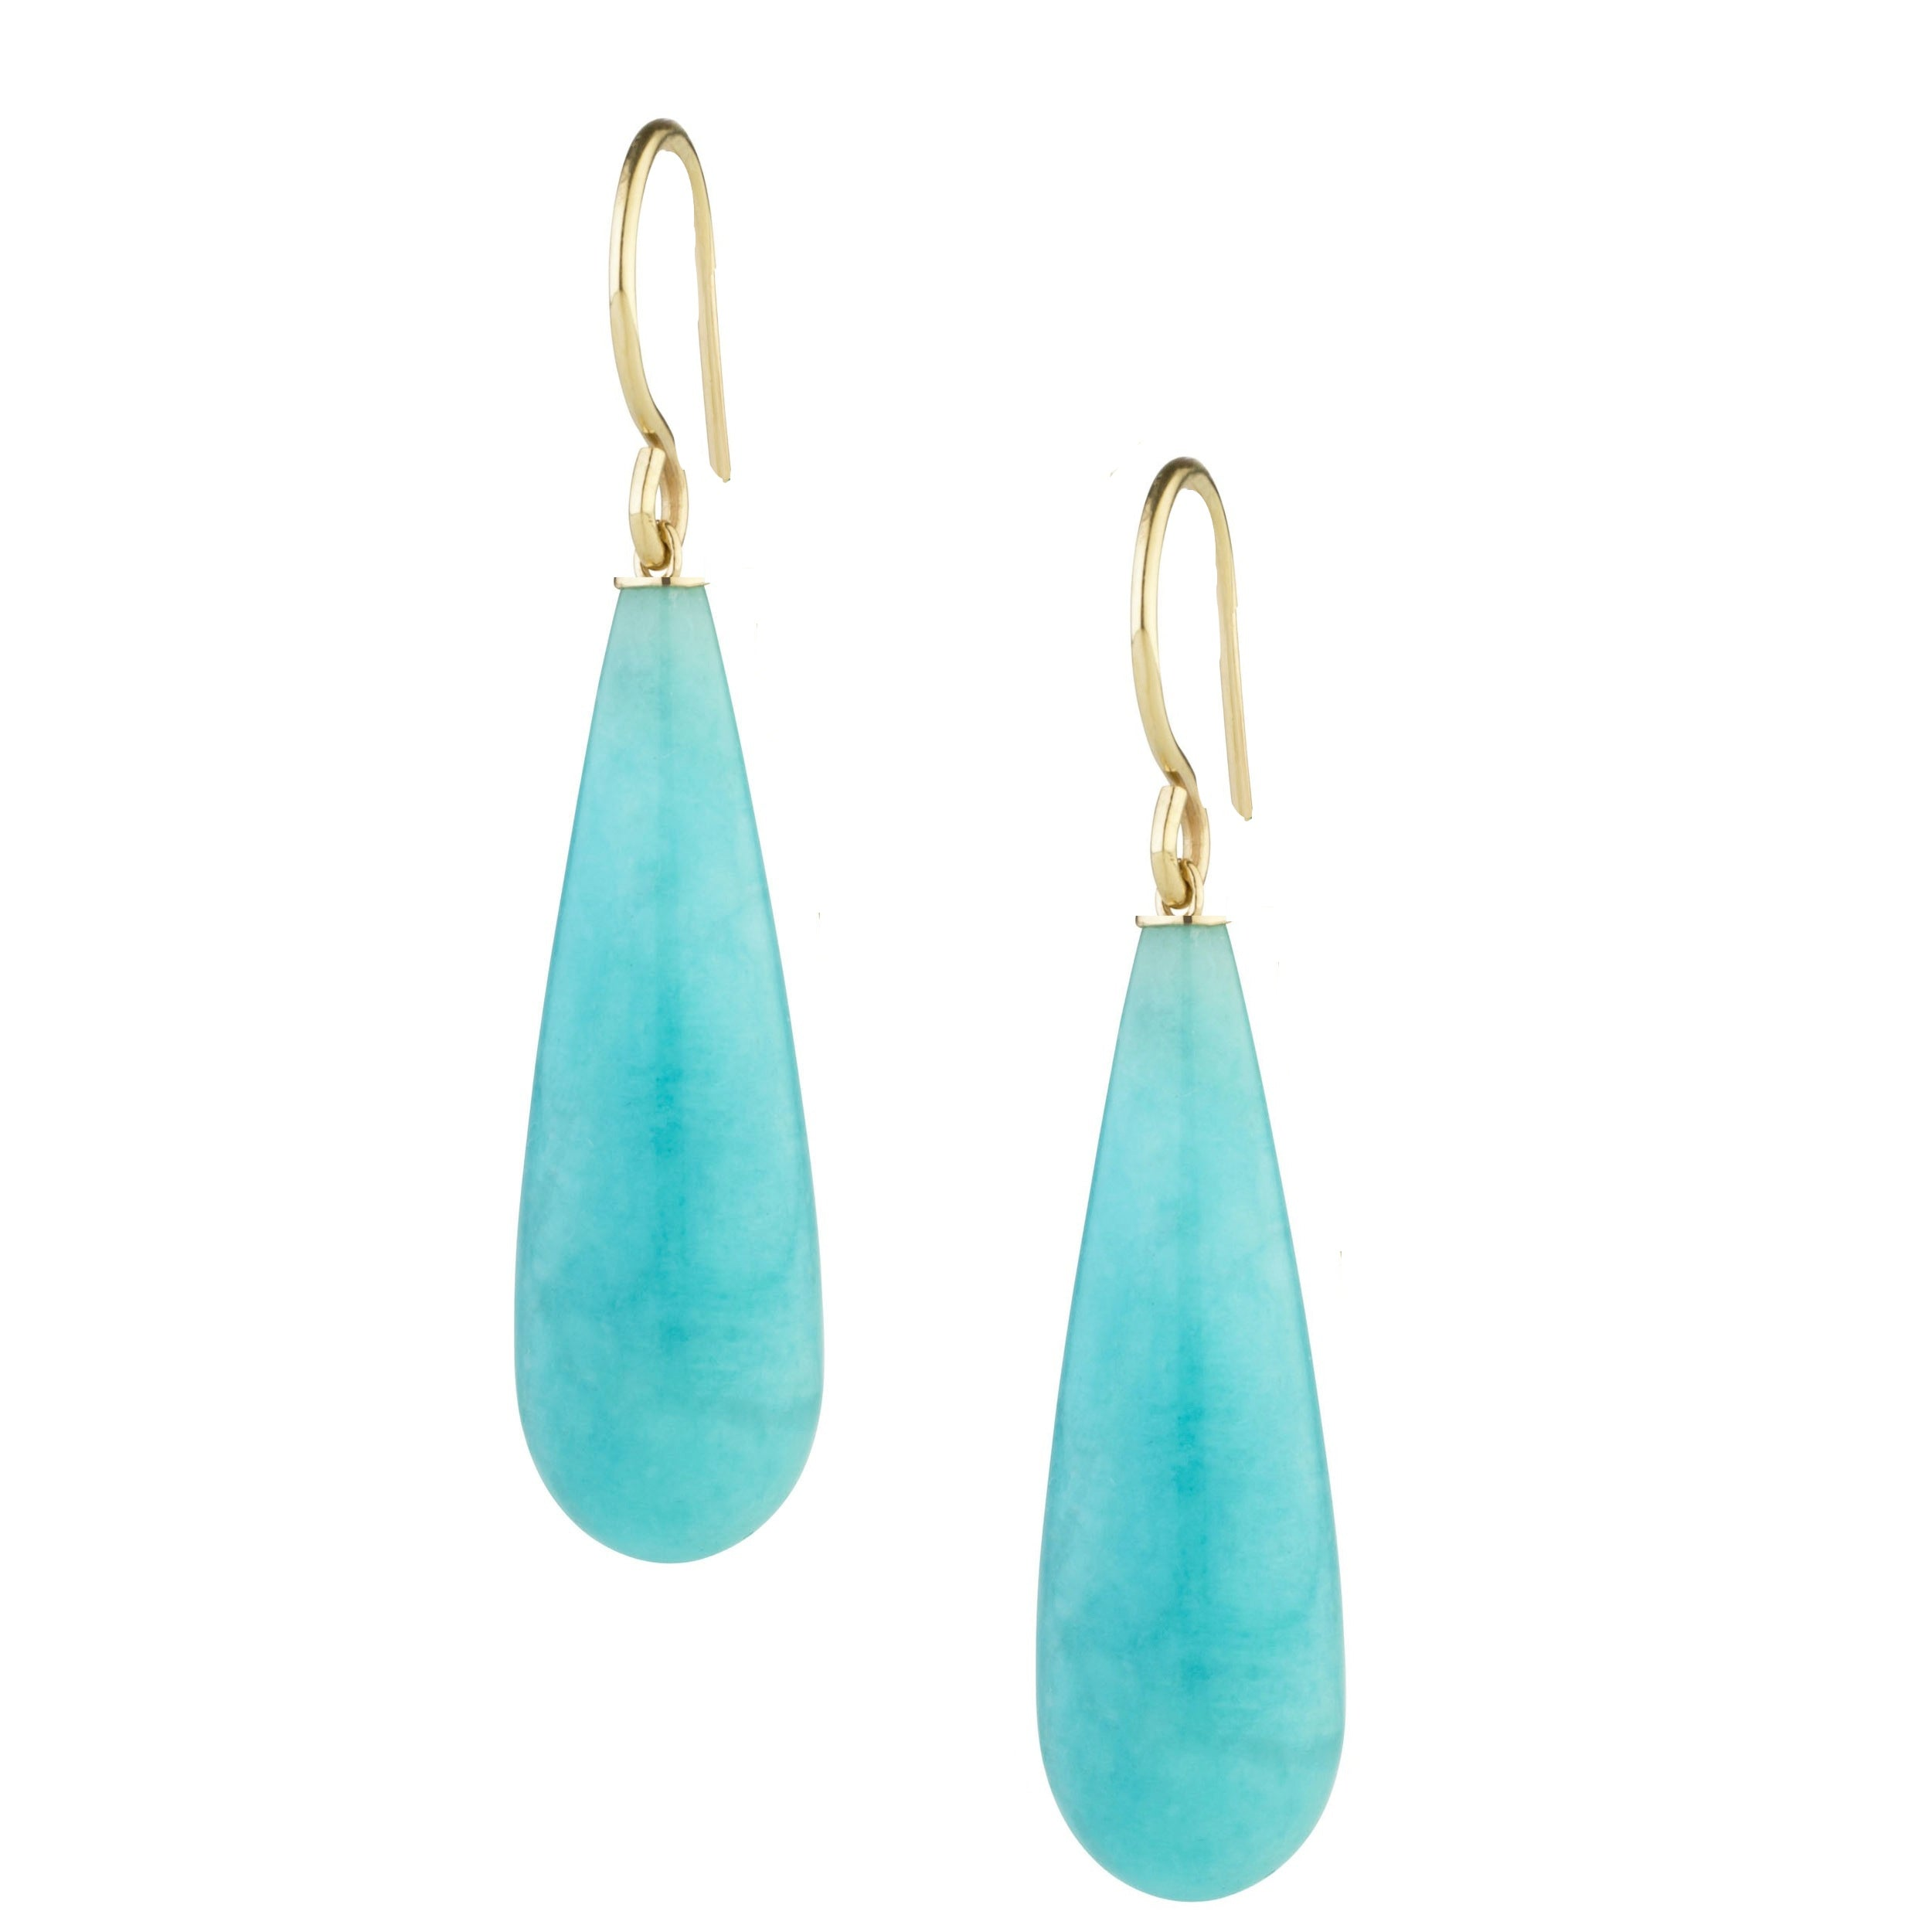 18k Gold Plated Turquoise Tear Drop Earrings